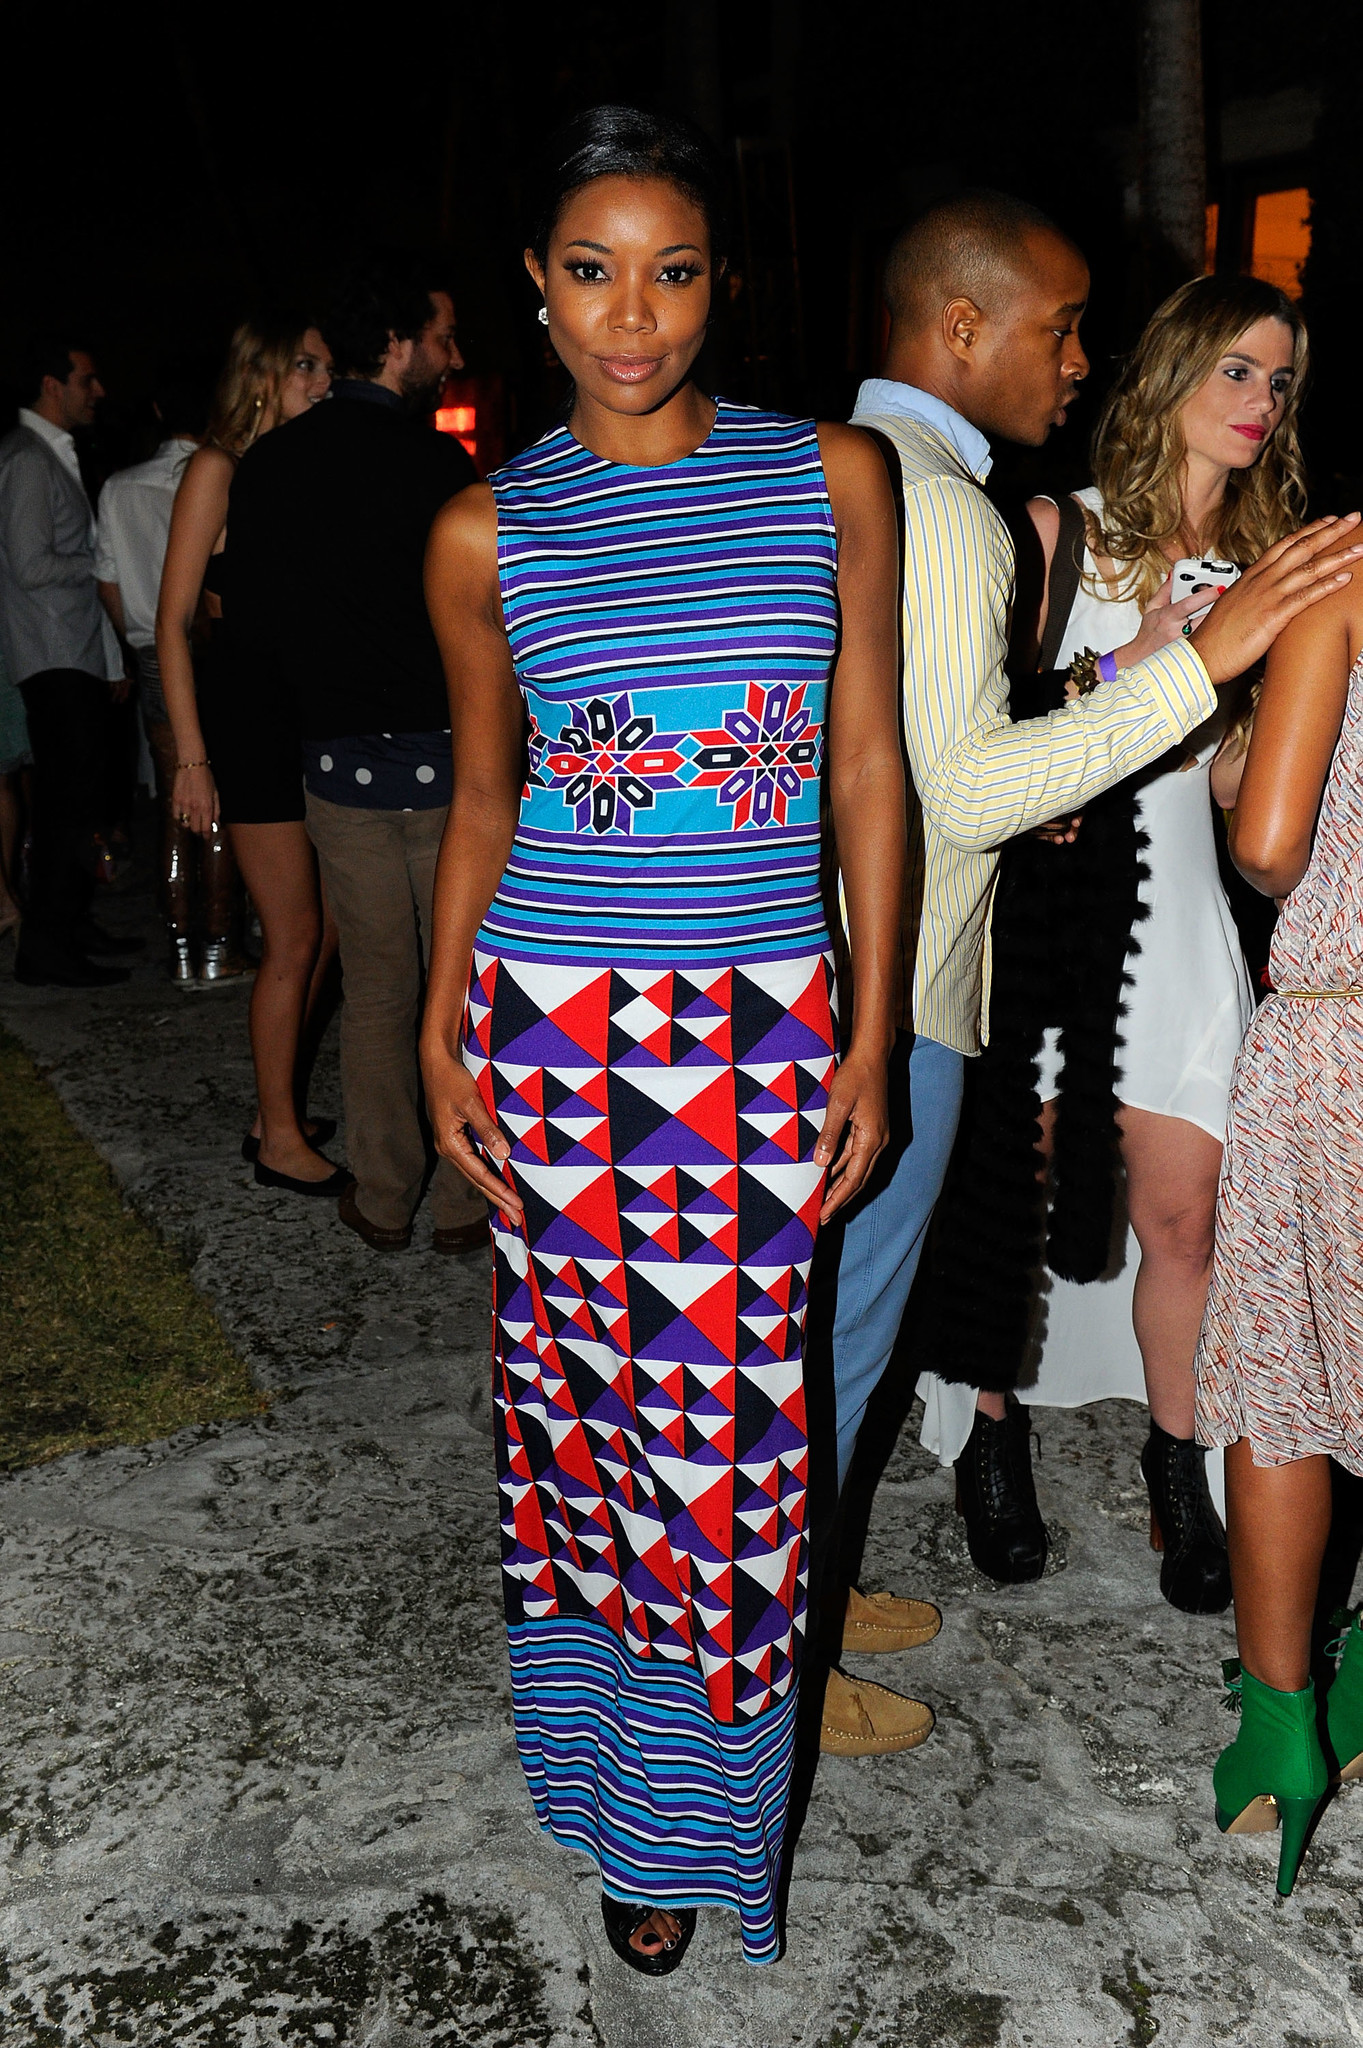 Styled by Jason Bolden, actress Gabrielle Union in a Lanvin dress attends Evenings in Vogue with Angela Missoni and Vittorio Missoni presented by Nordstrom at Casa de Suenos.